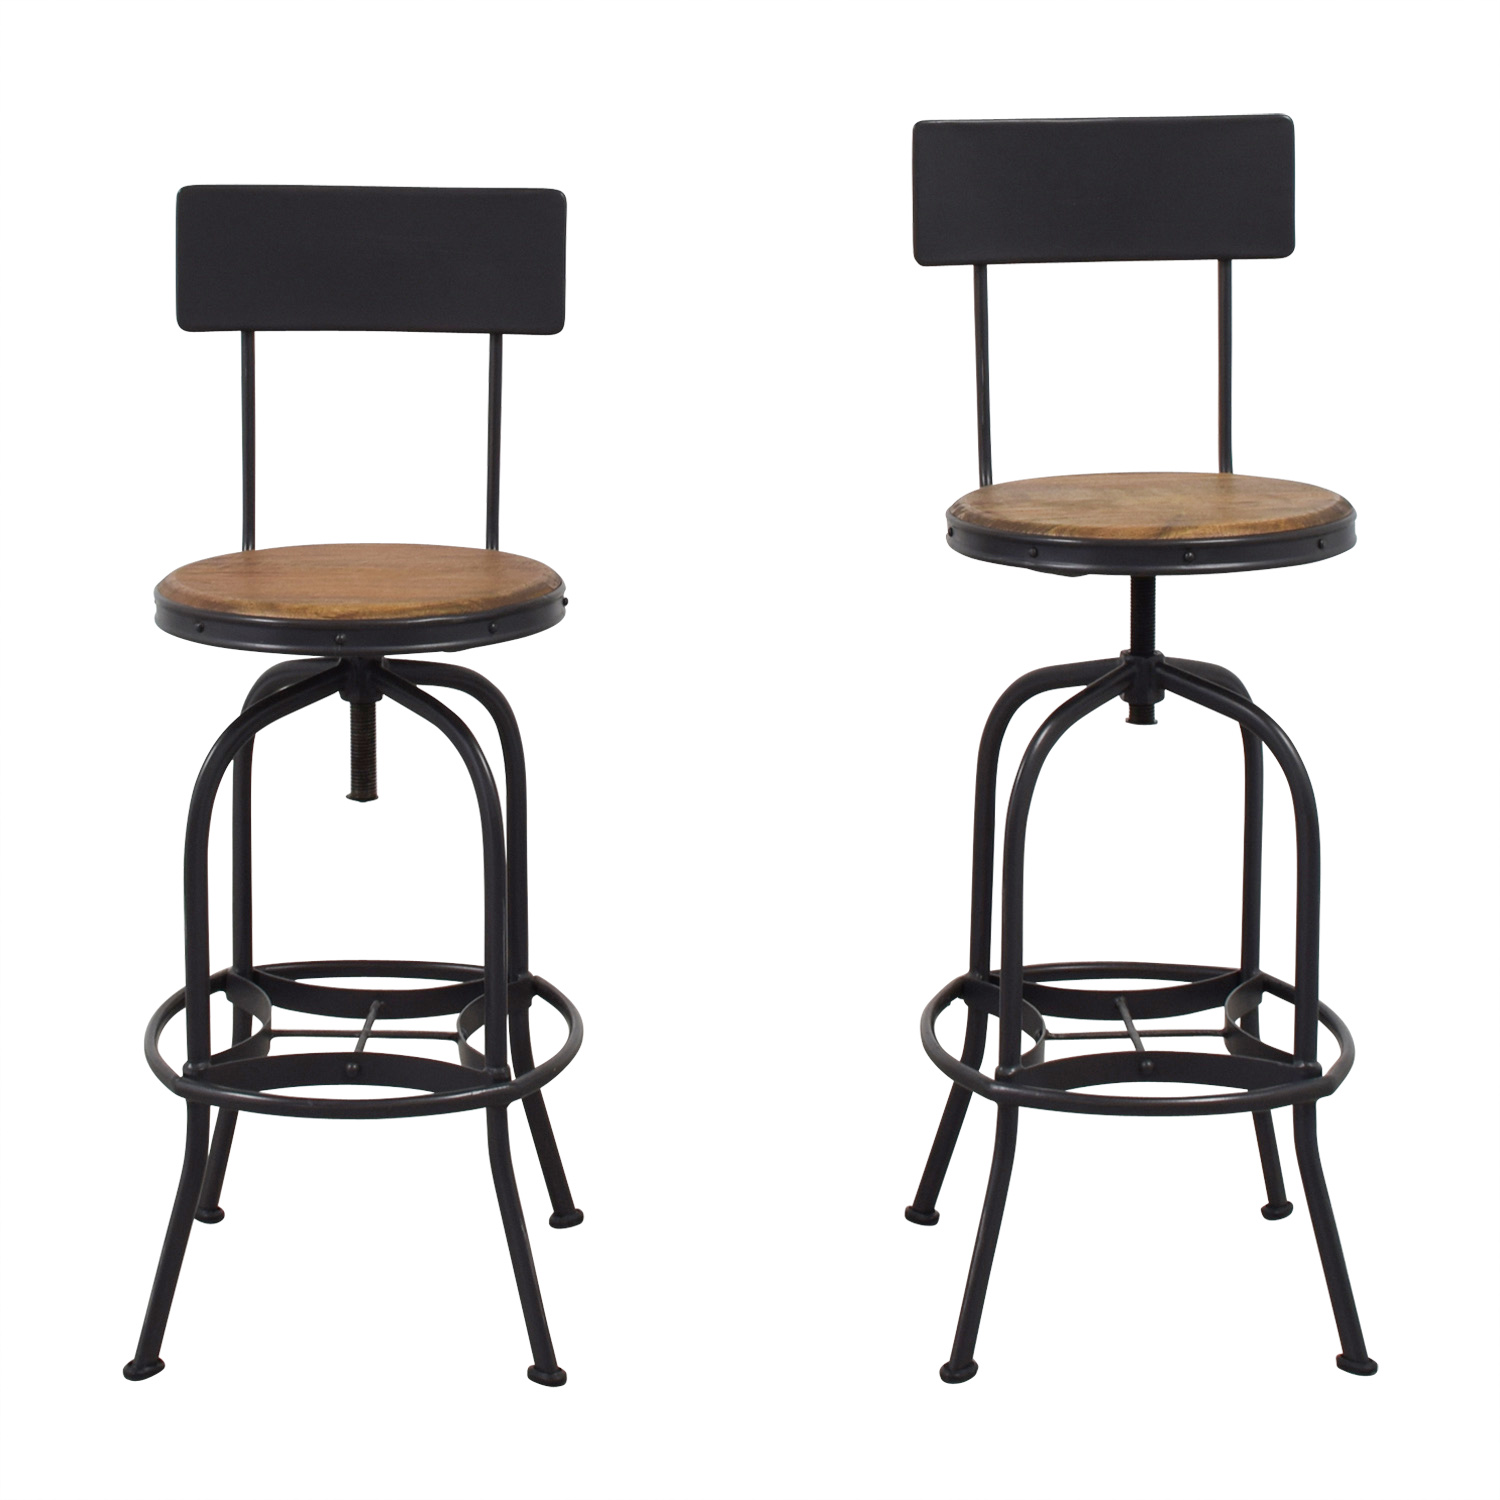 Adjustable Height Bar Stools used